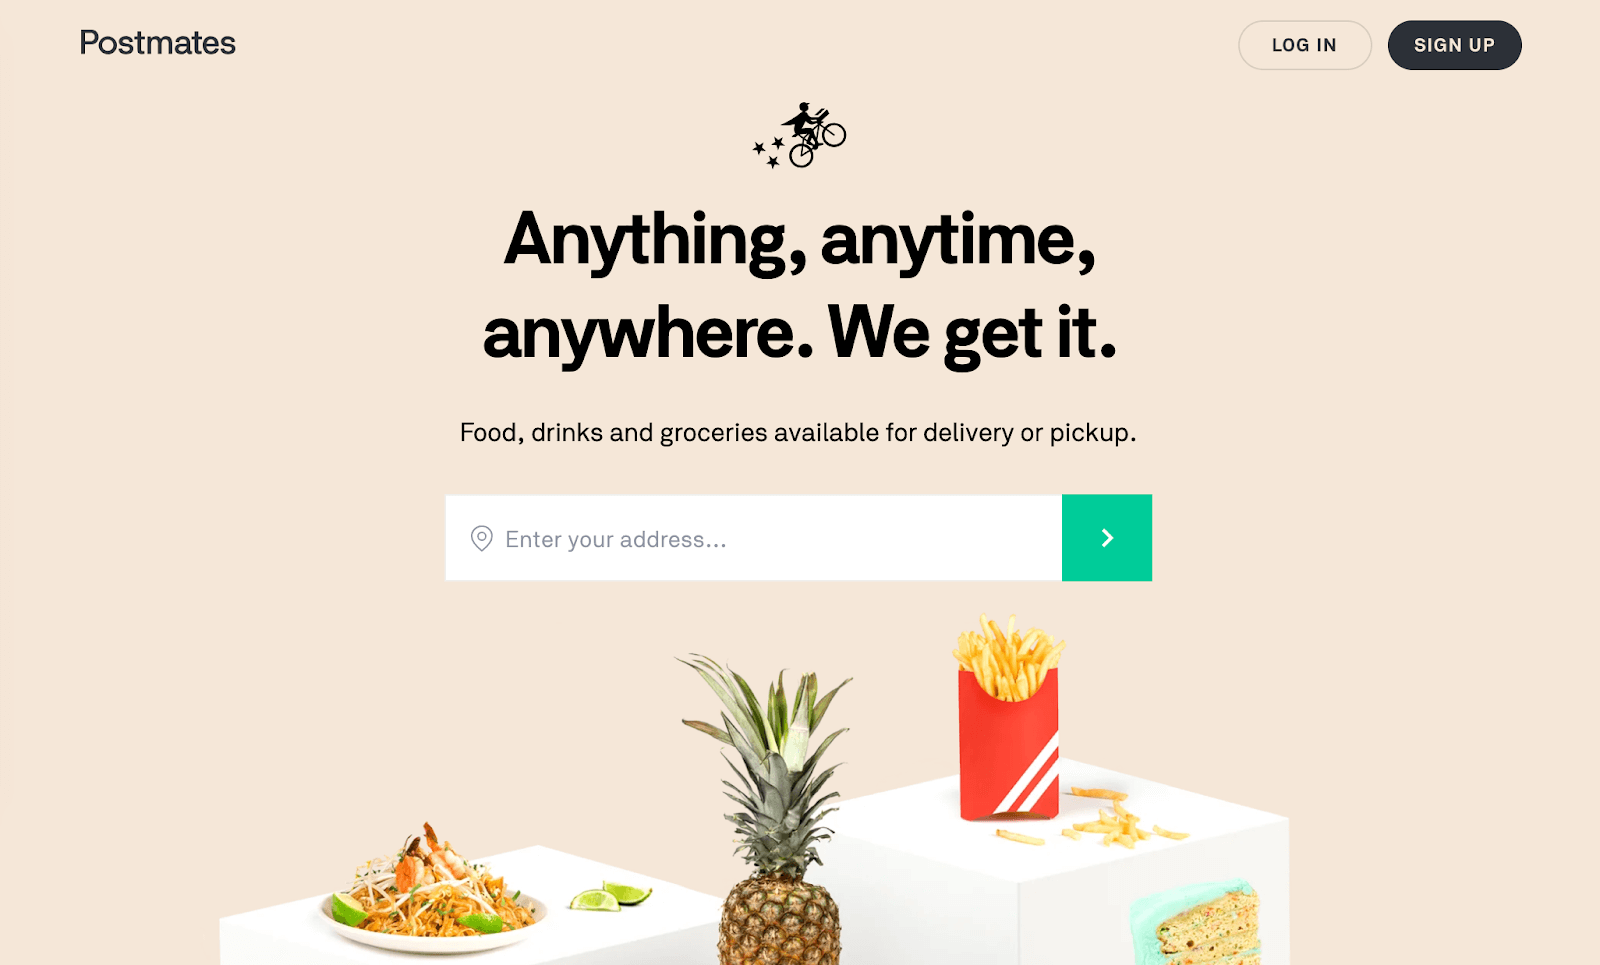 Fast Food Delivery: Postmates homepage